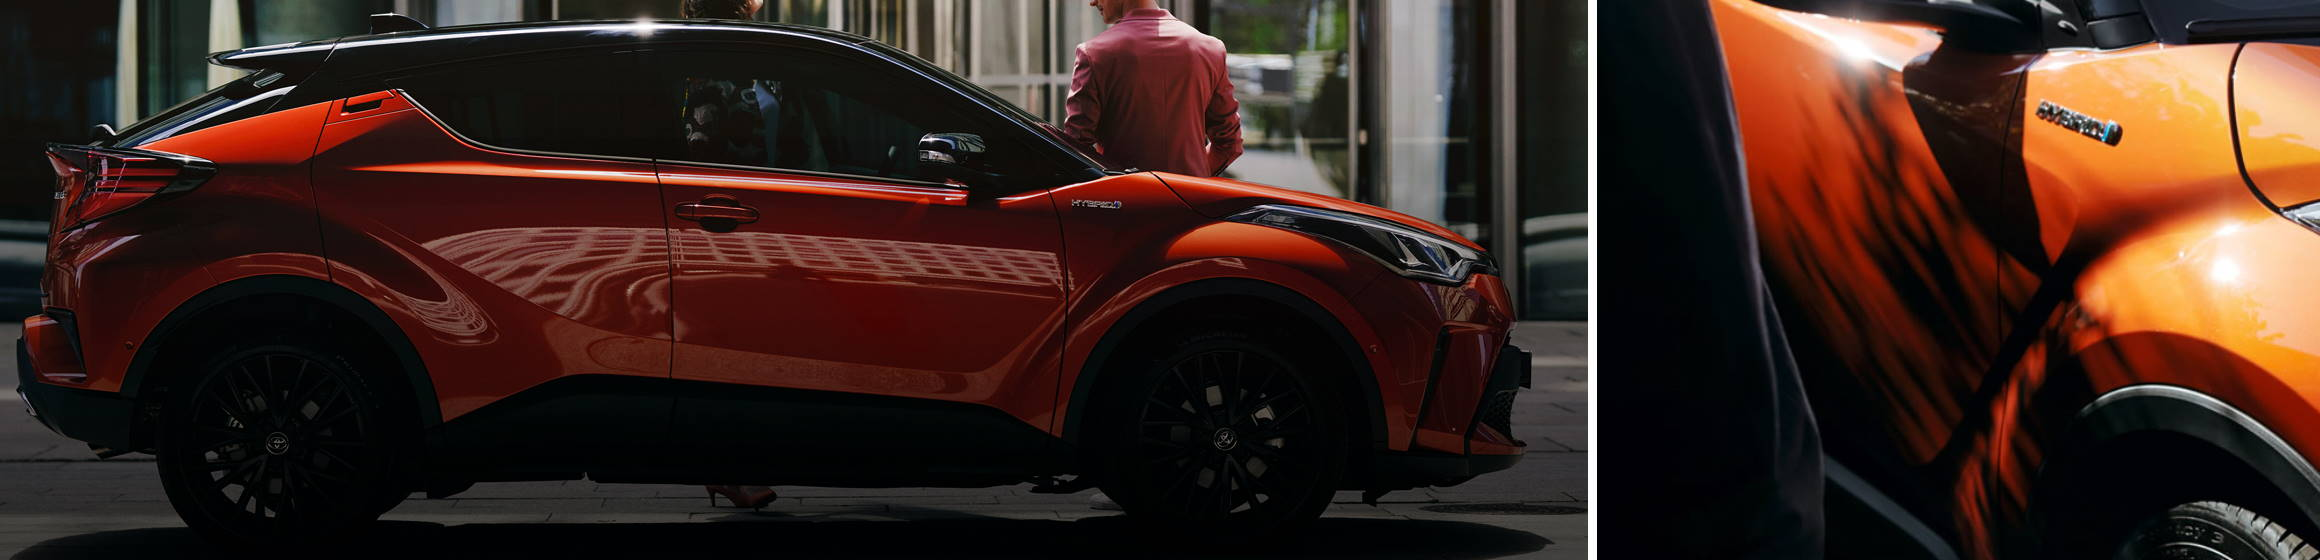 Der neue Toyota C-HR in orange